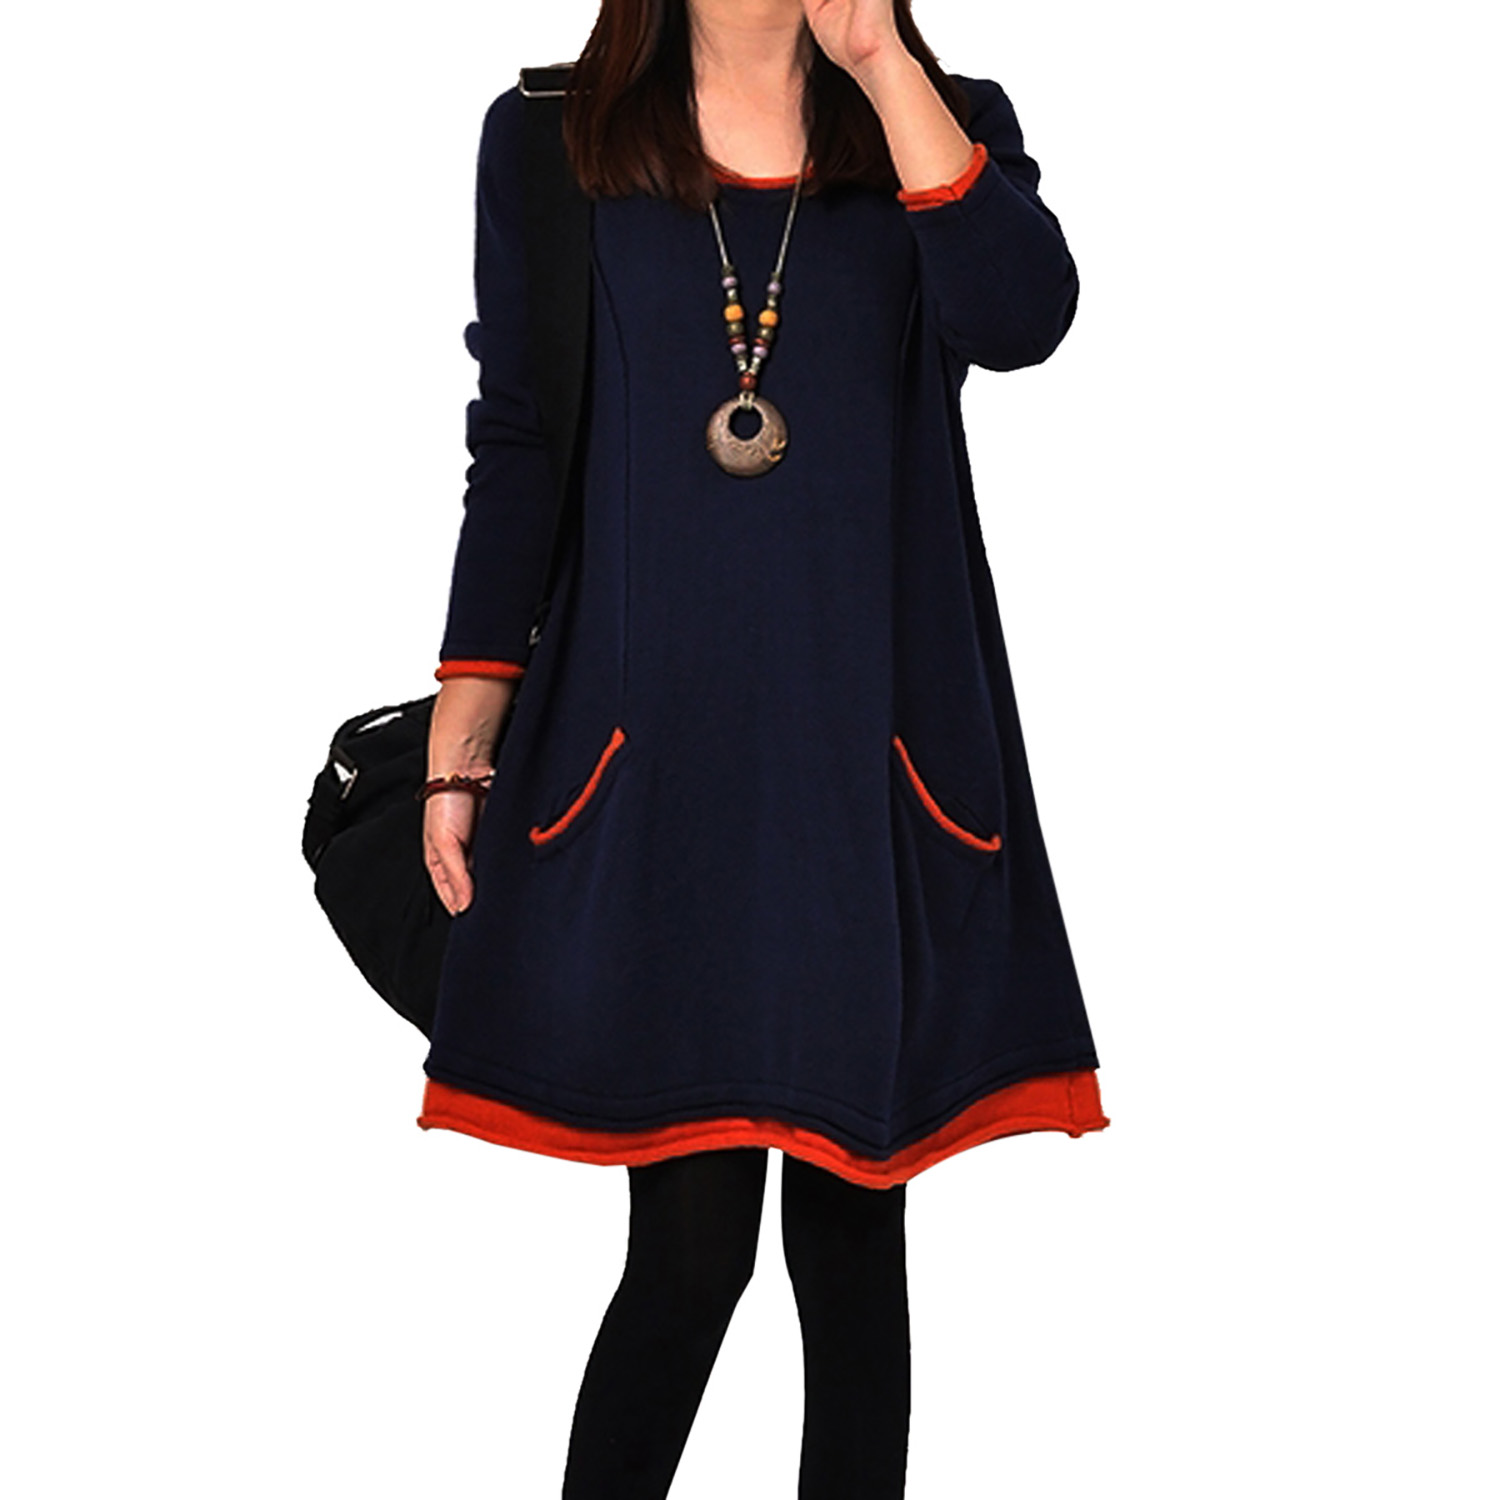 fe794d73eb51 2019 Casual Women Spring Autumn A line dress Pullover Long Sleeve Round  Neck Patchwork Mid Waist